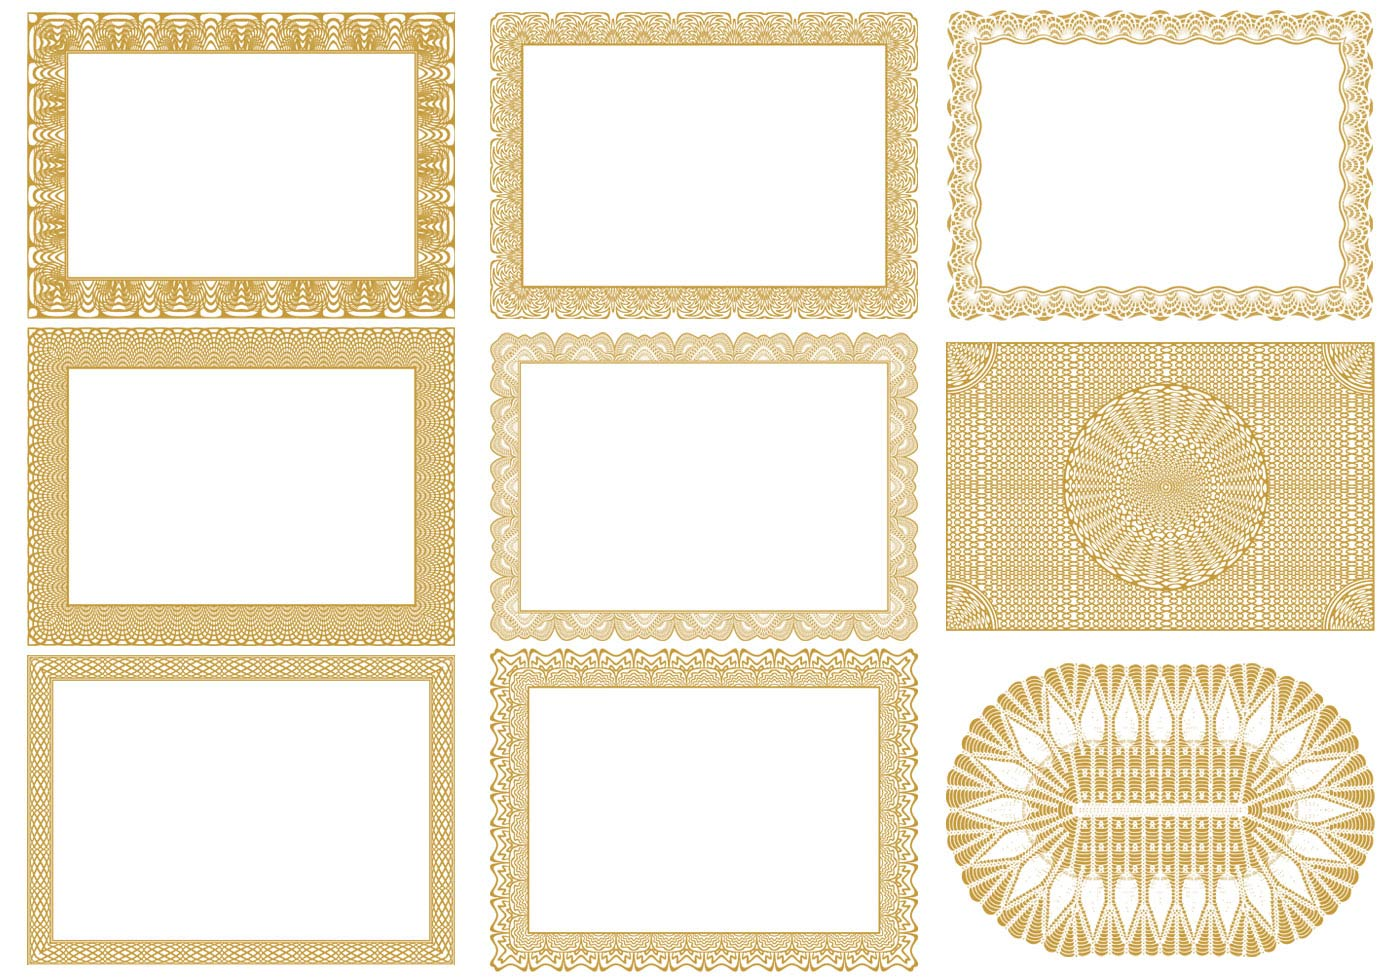 Certificate gold border design clipart best borders template certificate border vector yelopaper Image collections